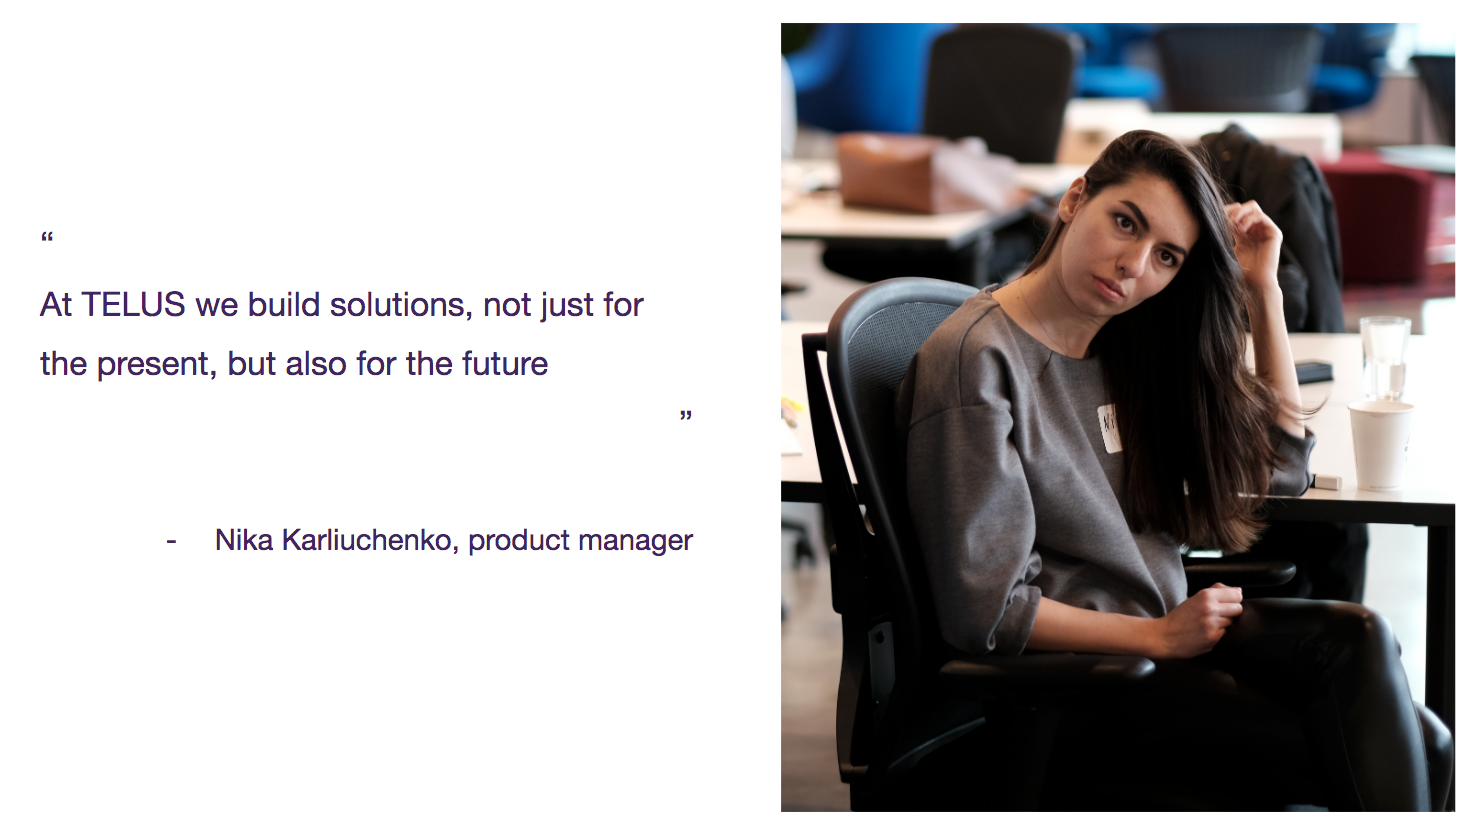 At TELUS we build solutions, not just for the present, but also for the future  - Nika Karliuchenko, product manager